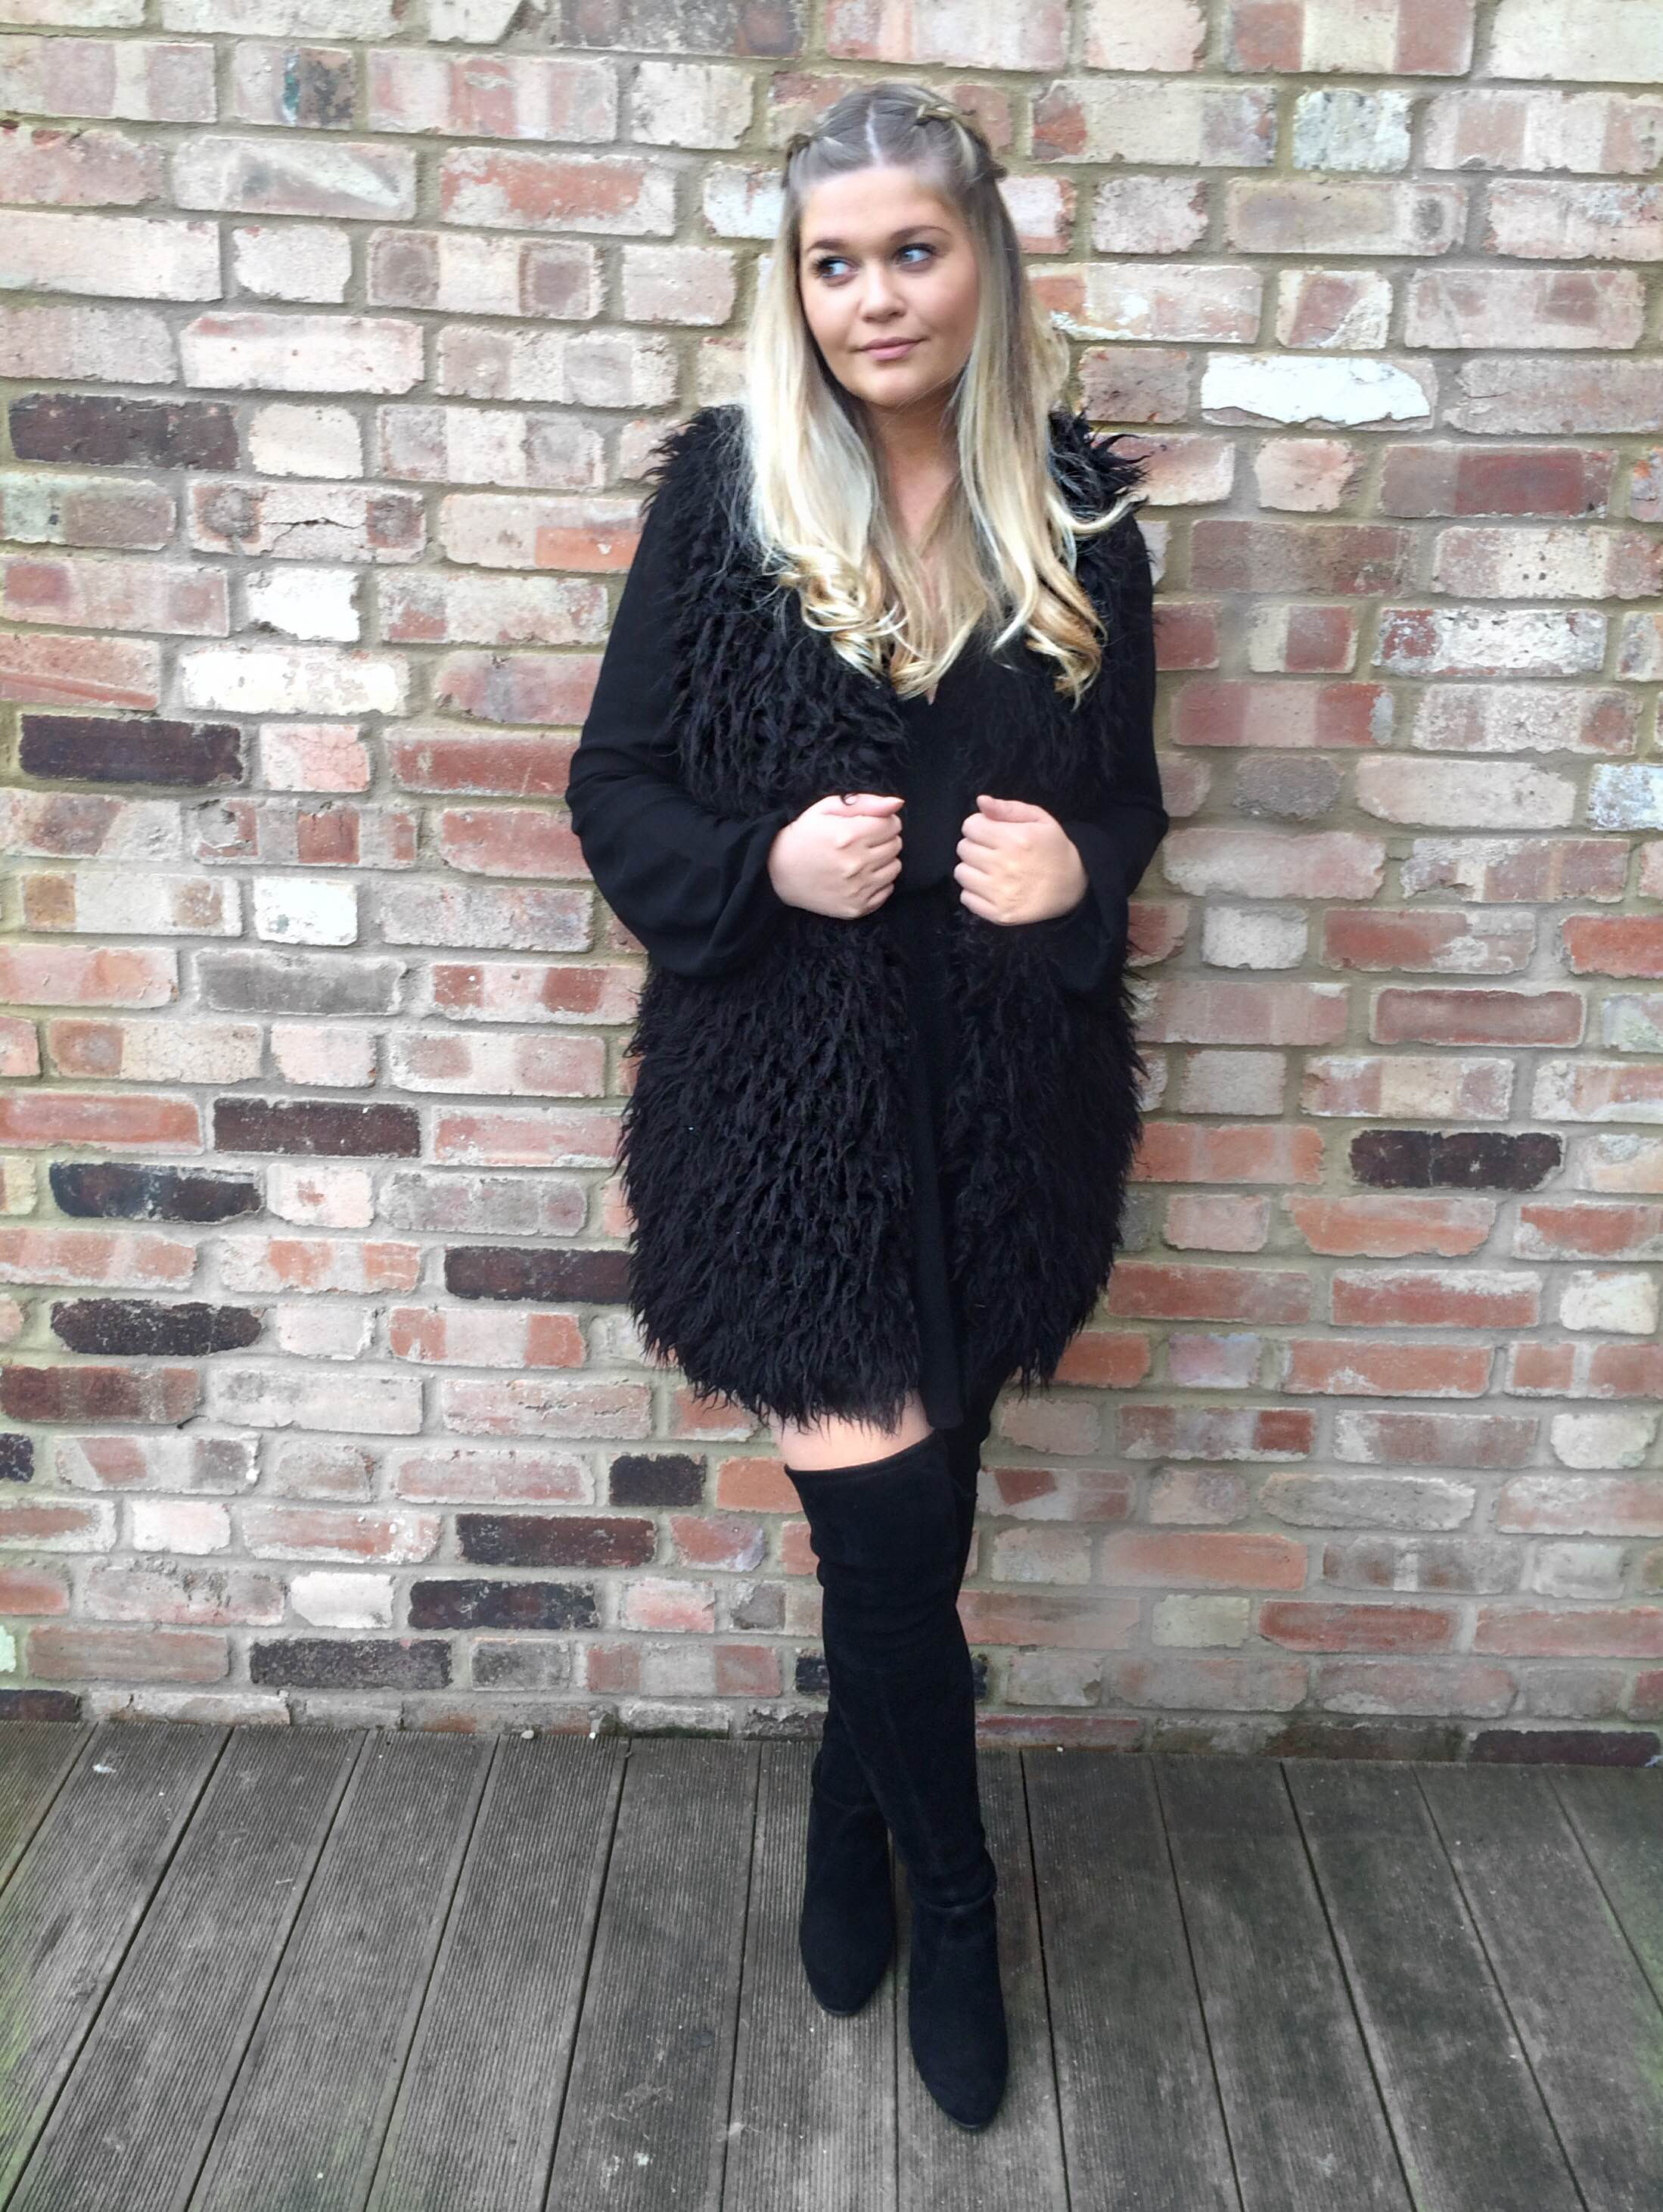 Black dress and boots date look